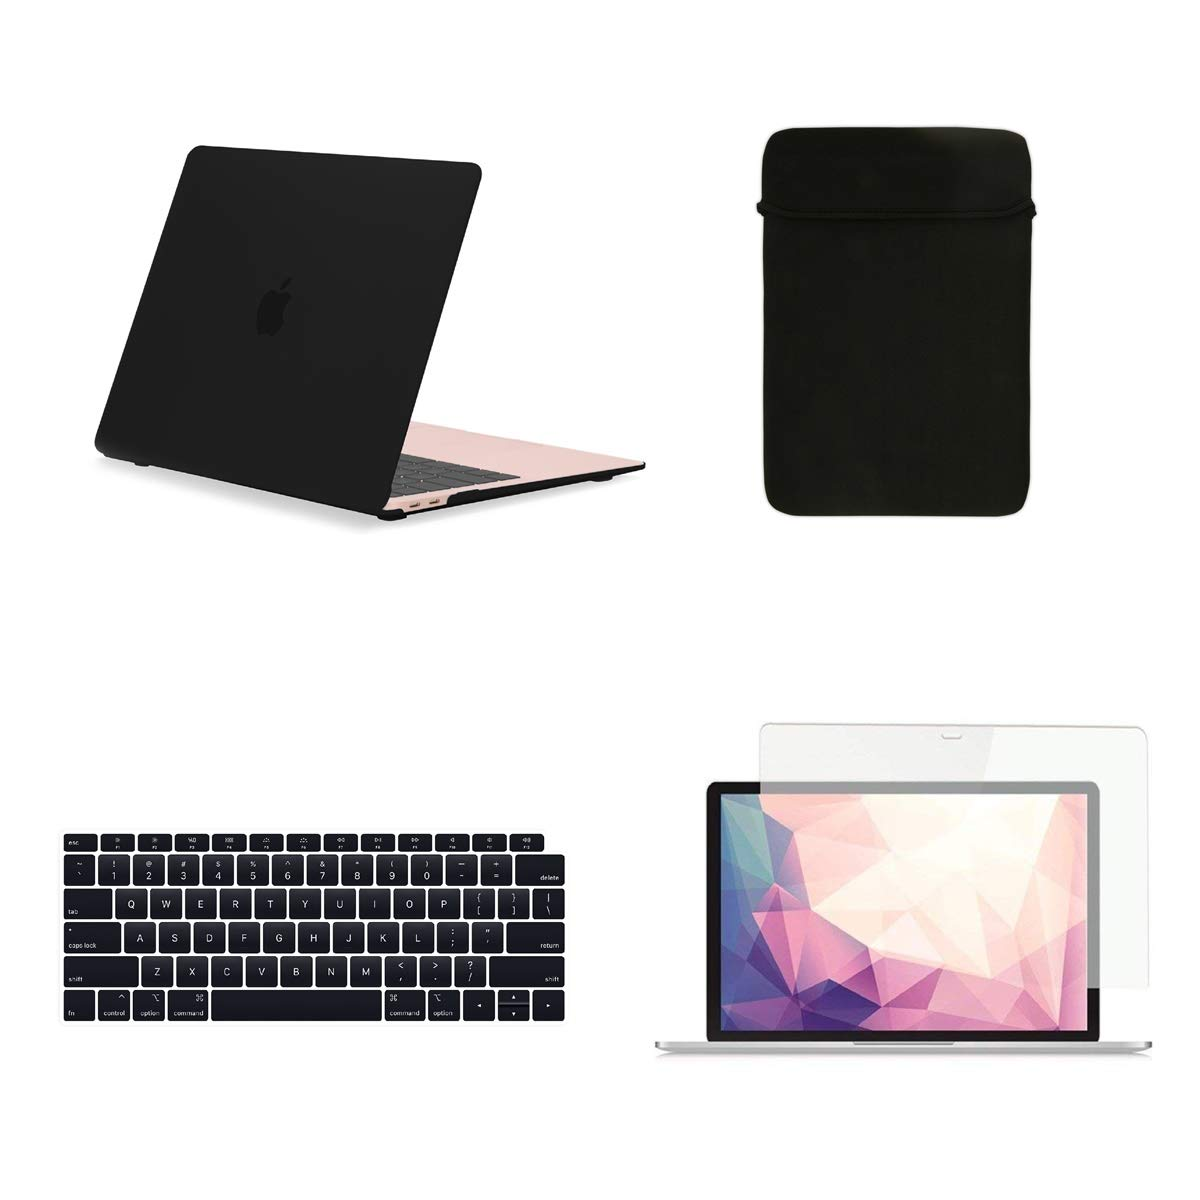 TOP CASE MacBook Air 13 Inch Case A1932/A2179 with Retina Display fits Touch ID 2020 2019 2018 Release, 4 in 1 Bundle Rubberized Hard Case, Keyboard Cover, Sleeve, Screen Protector - Black